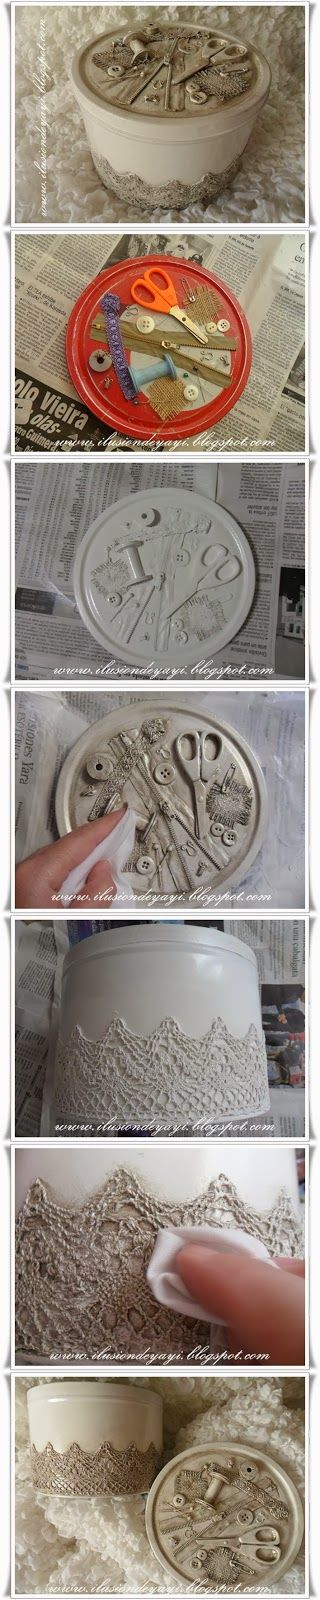 Tutorial ♥ zipper and sewing articles - Plan Provision